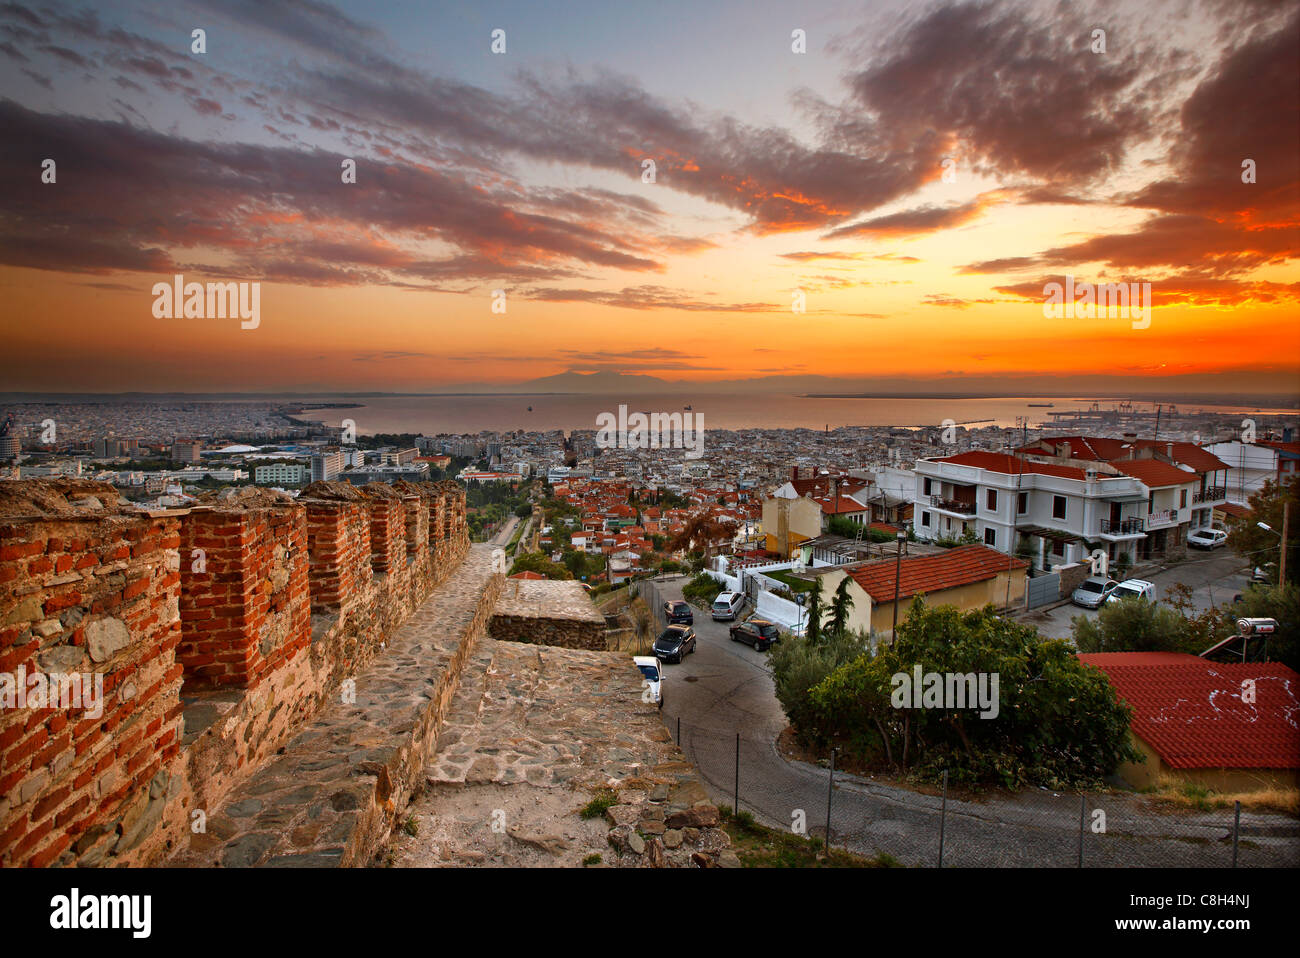 Panoramic view of Thessaloniki from the walls (